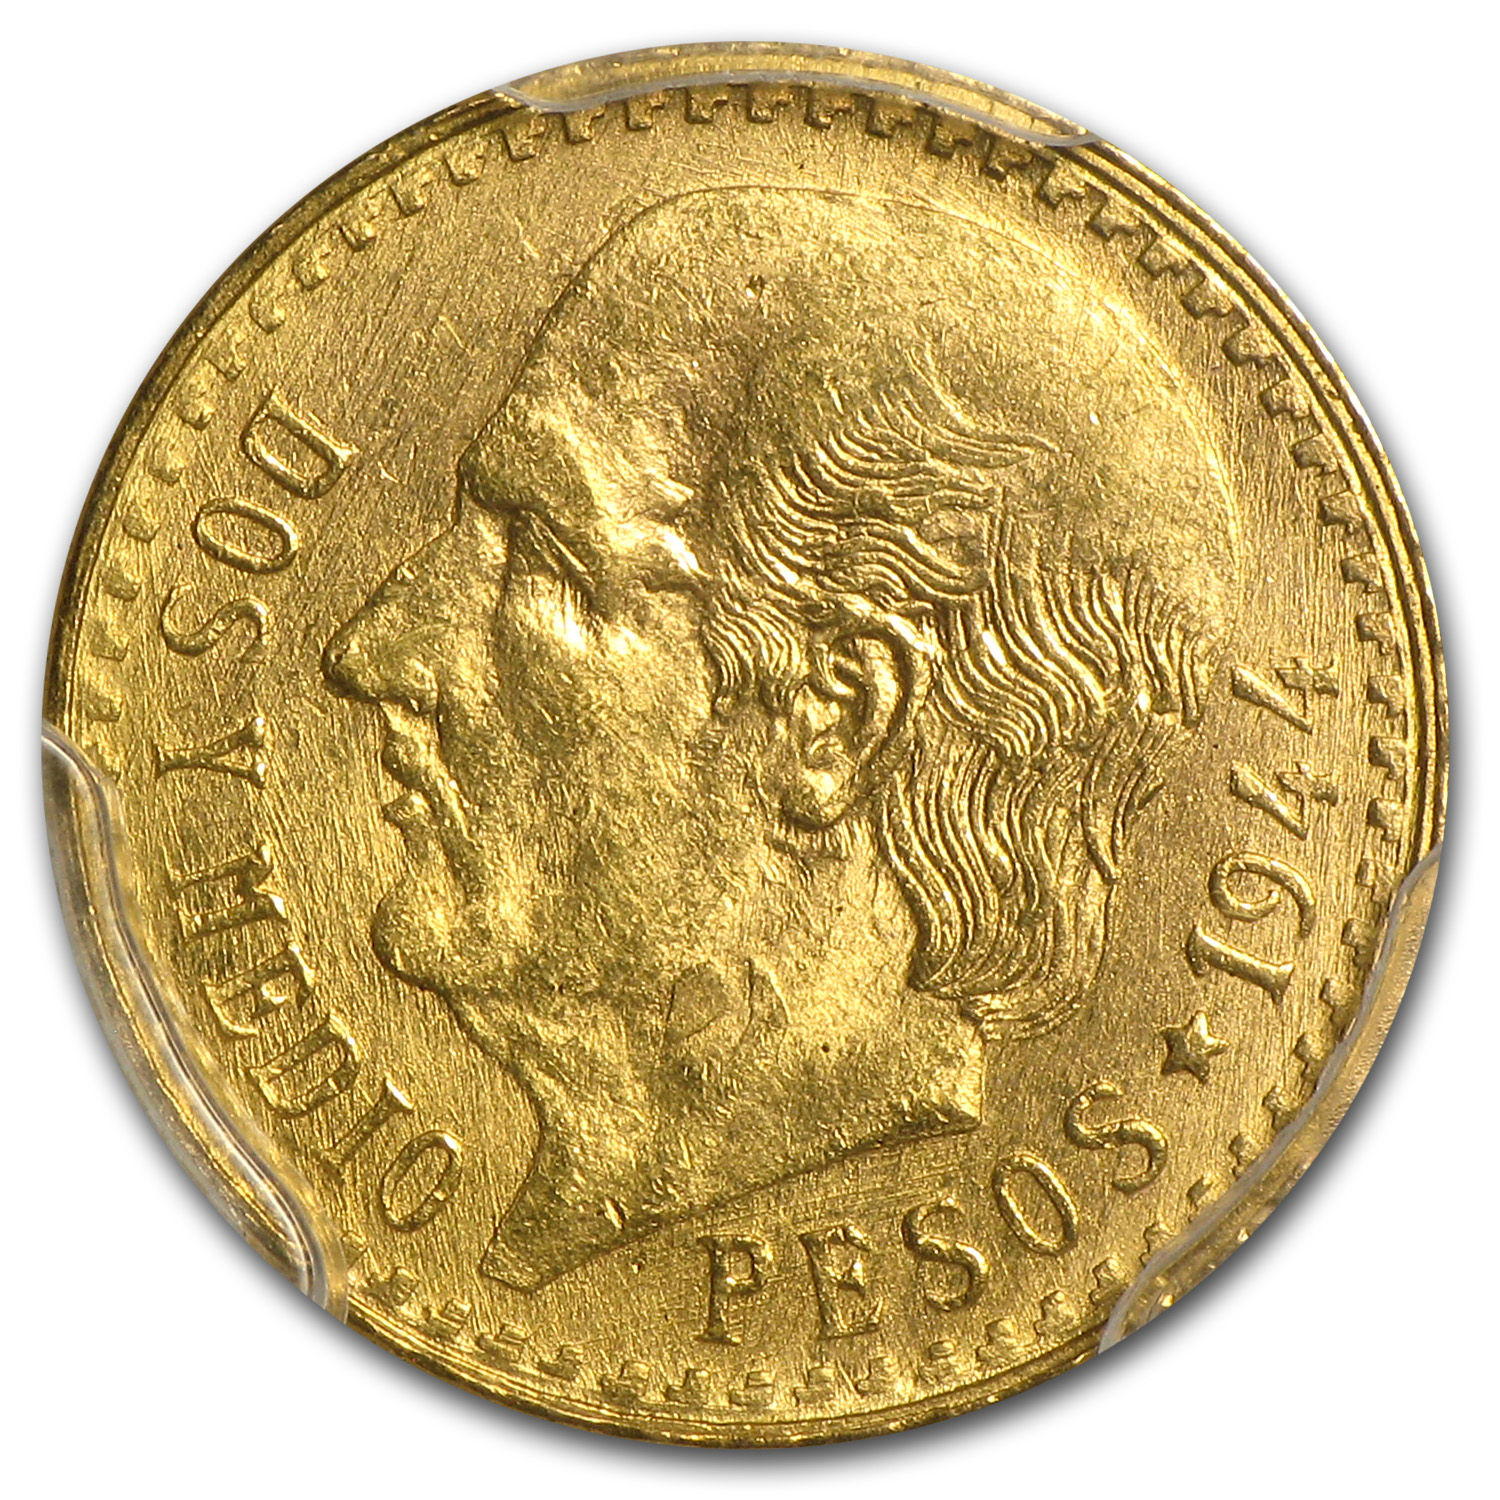 Mexico 1944 2 1/2 Pesos Gold Coin - MS-64 PCGS